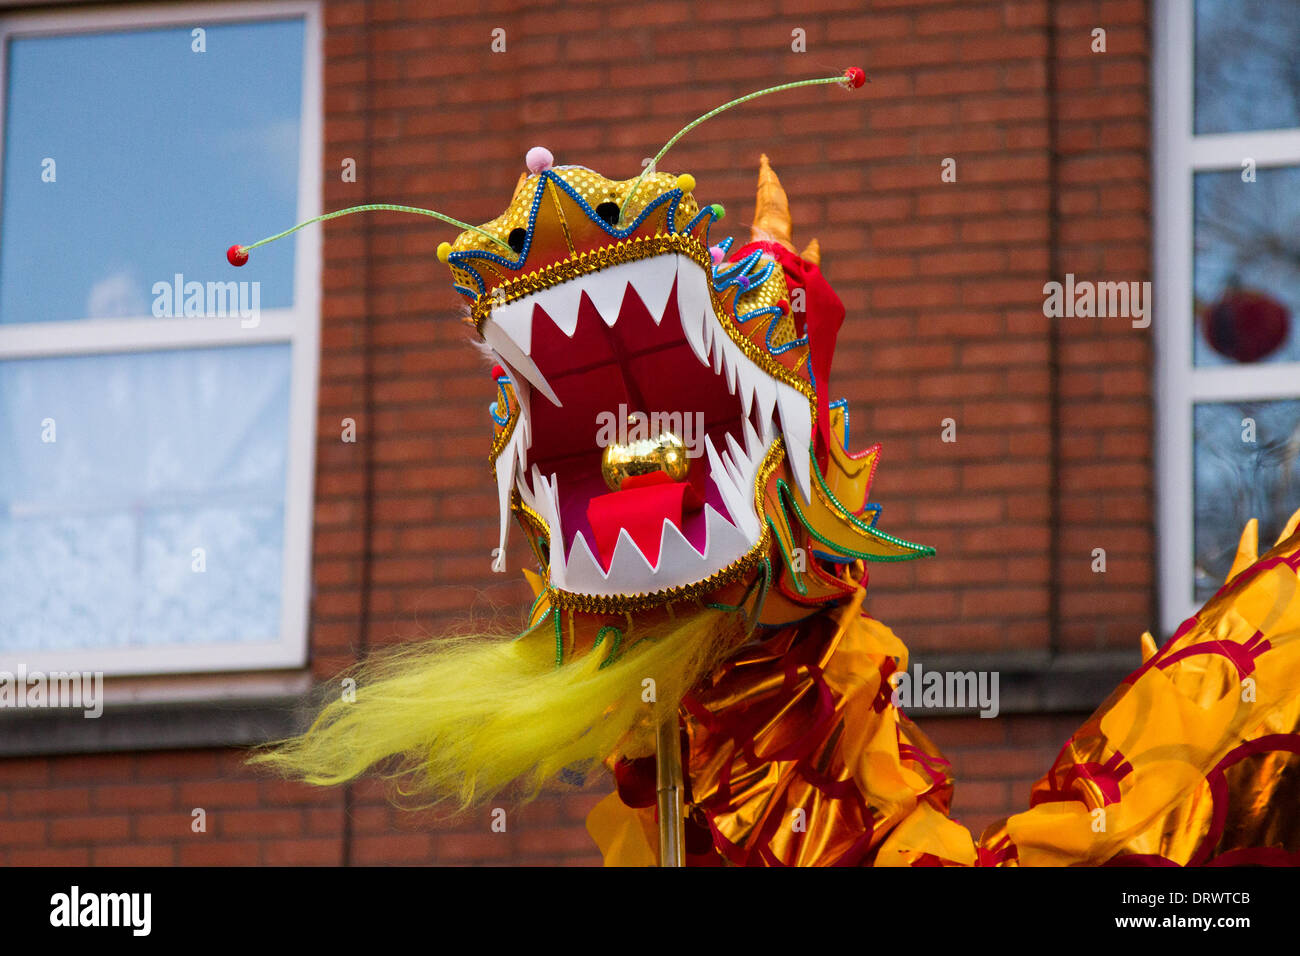 Manchester, Chinatown 2nd February, 2104.    High pole dragon dance at the Chinese New Year in Manchester the North's biggest Chinese New Year celebrations. Manchester's Chinatown is one of Europe's biggest tucked into a narrow grid of streets behind Piccadilly Gardens.  With a 175-foot paper dragon, a lion dance, martial arts demonstrations, the Dragon Parade is one of the highlights of Manchester's annual events calendar. Credit:  Mar Photographics/Alamy Live News. - Stock Image